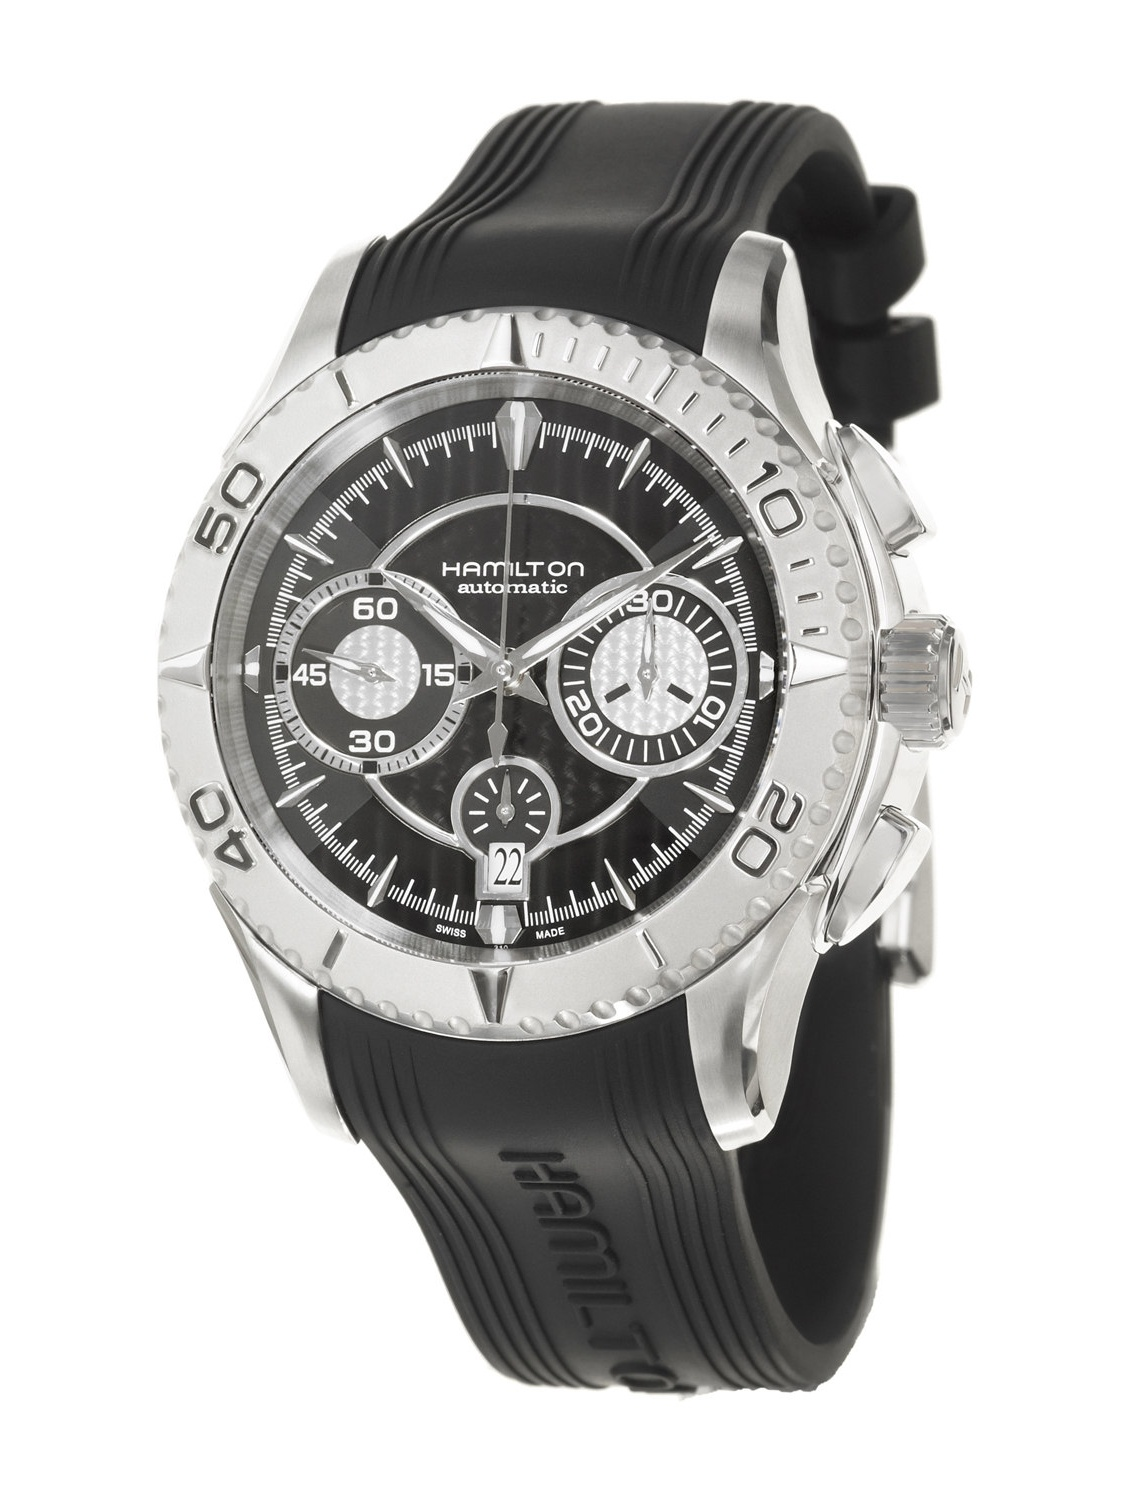 Hamilton Men's 'Seaview' Stainless Steel and Rubber Automatic Watch by Overstock